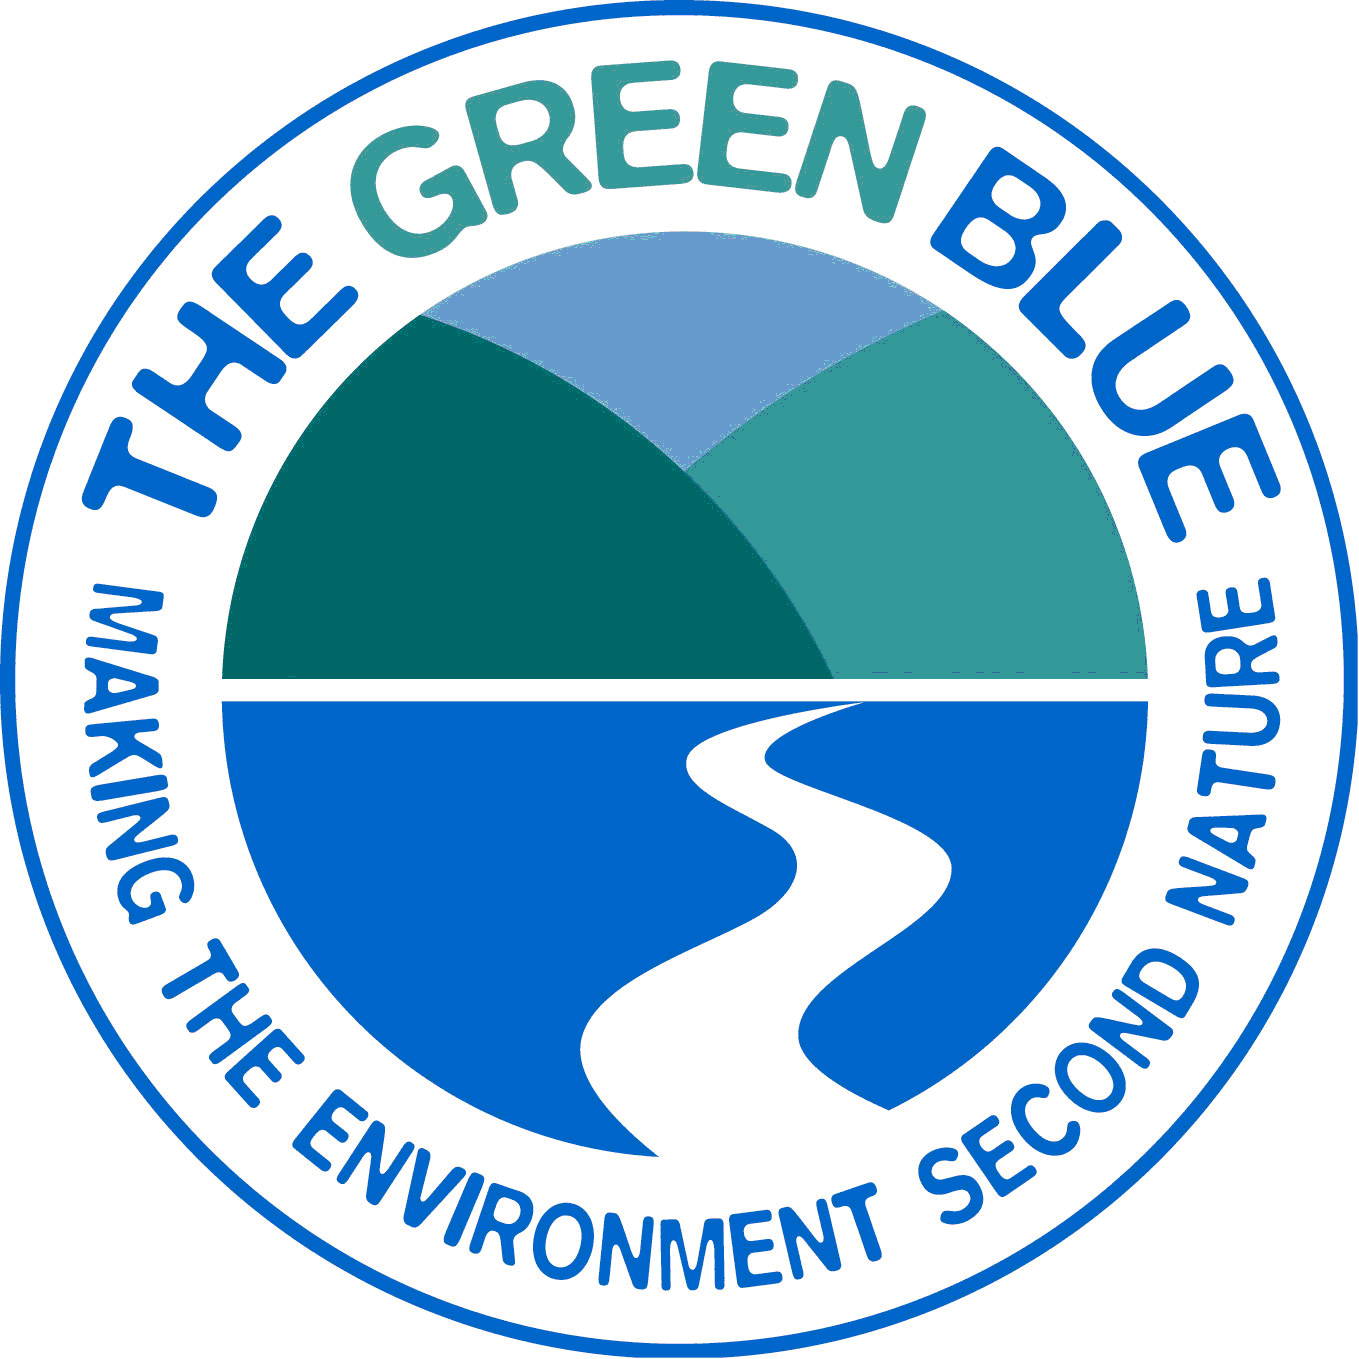 Green Blue logo and link to Green Blue website